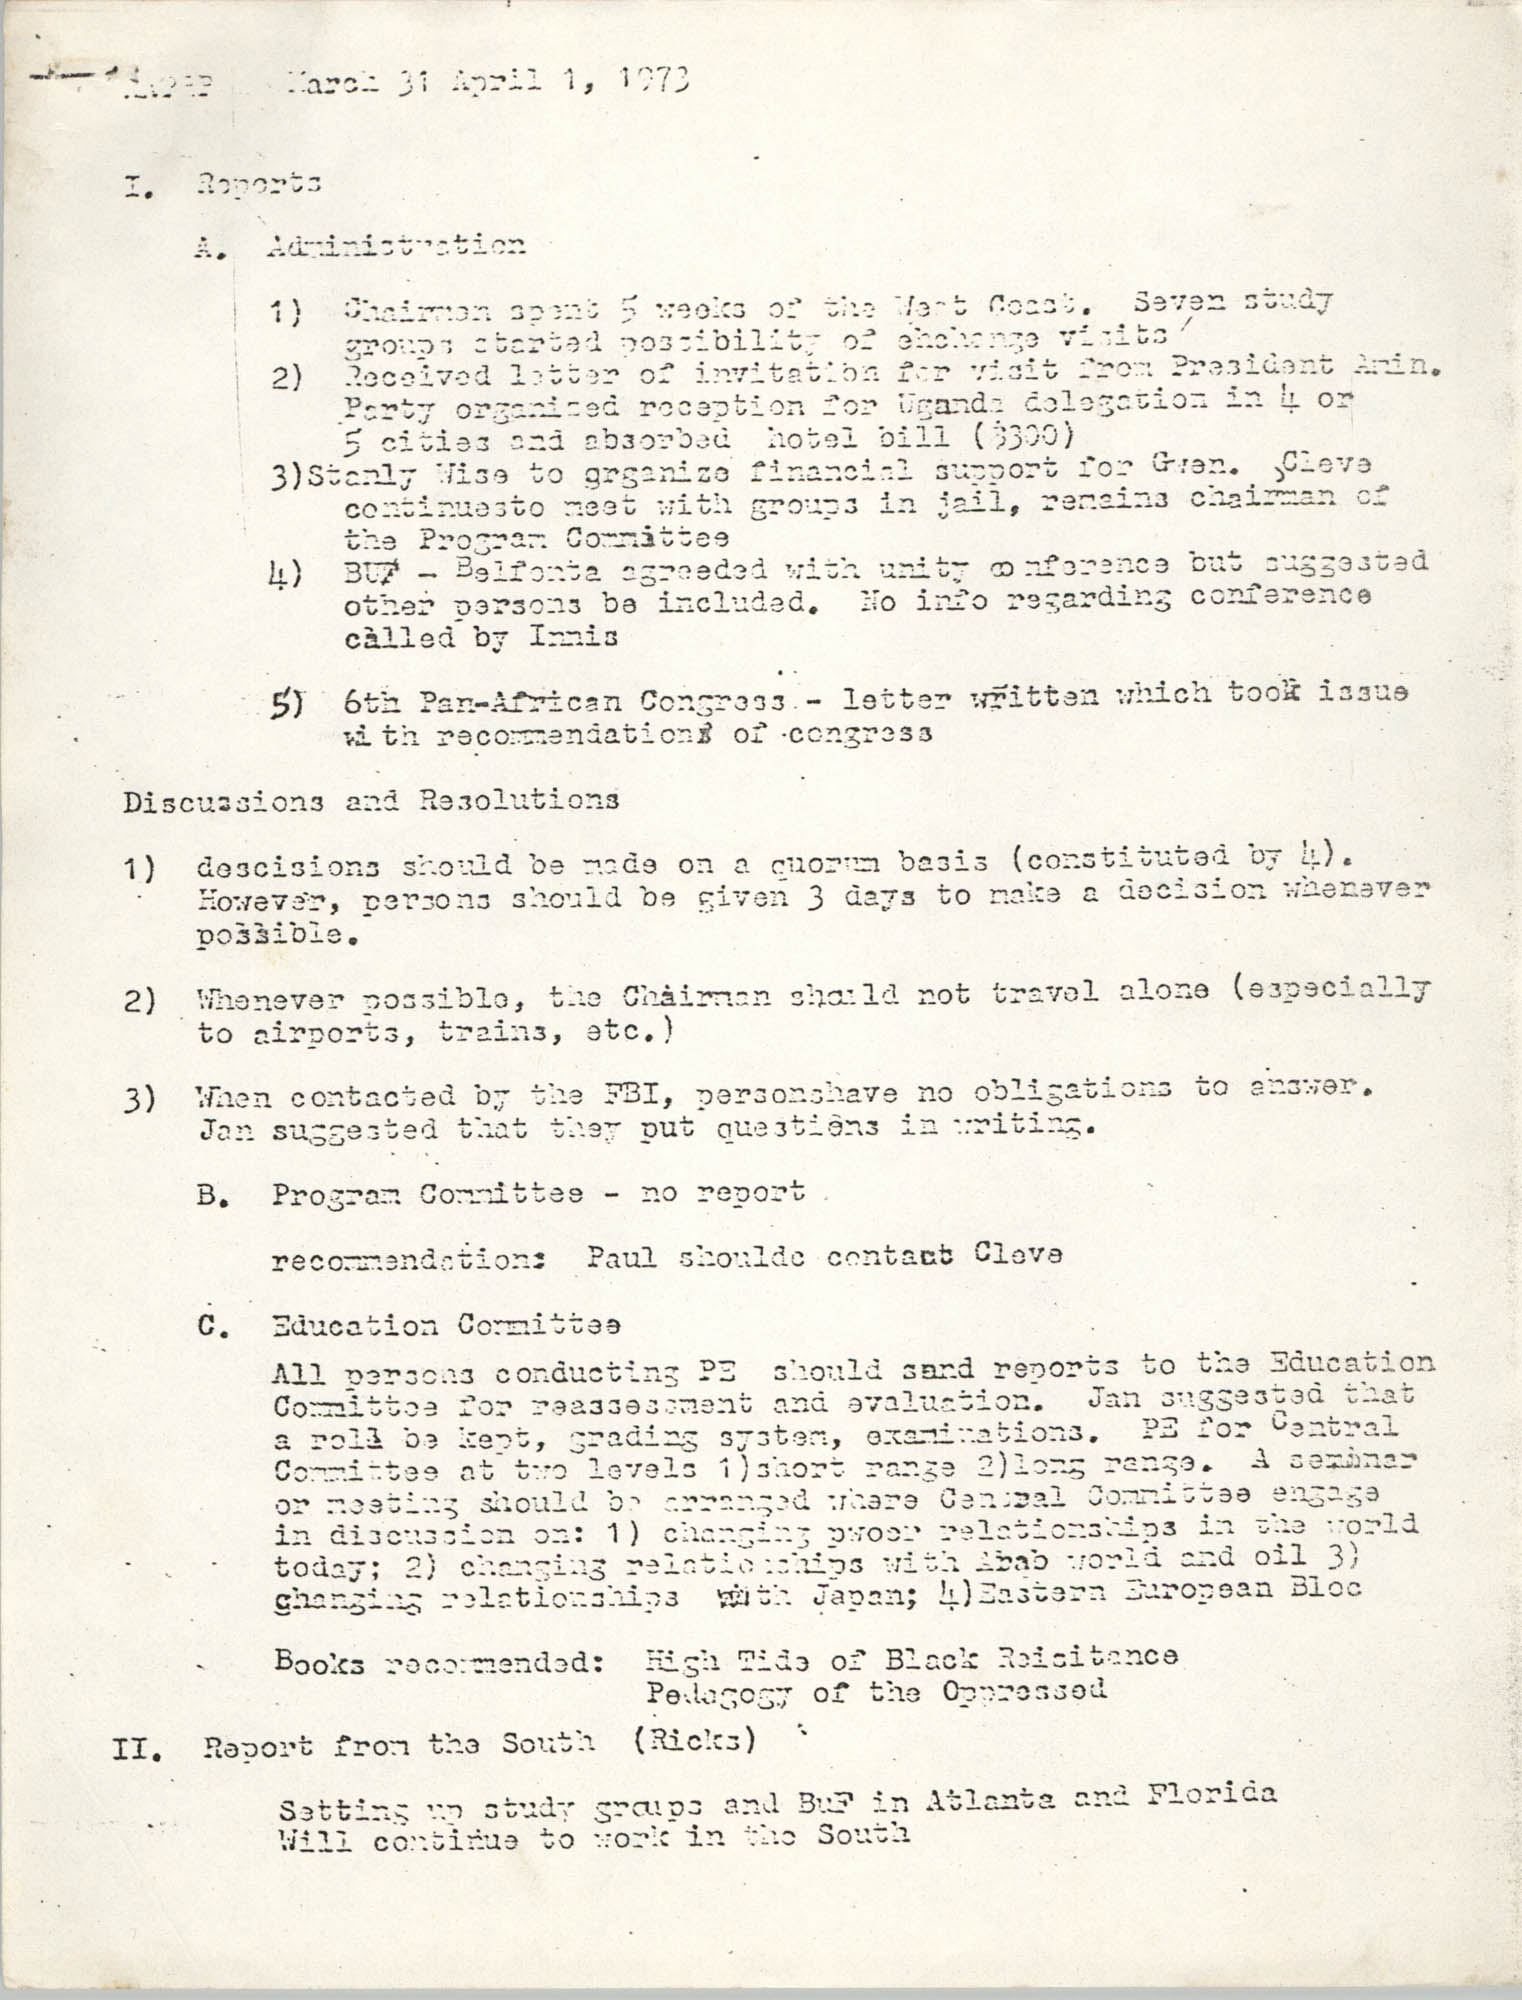 Minutes of All African People's Revolutionary Party Meeting, March 31 to April 1, 1973